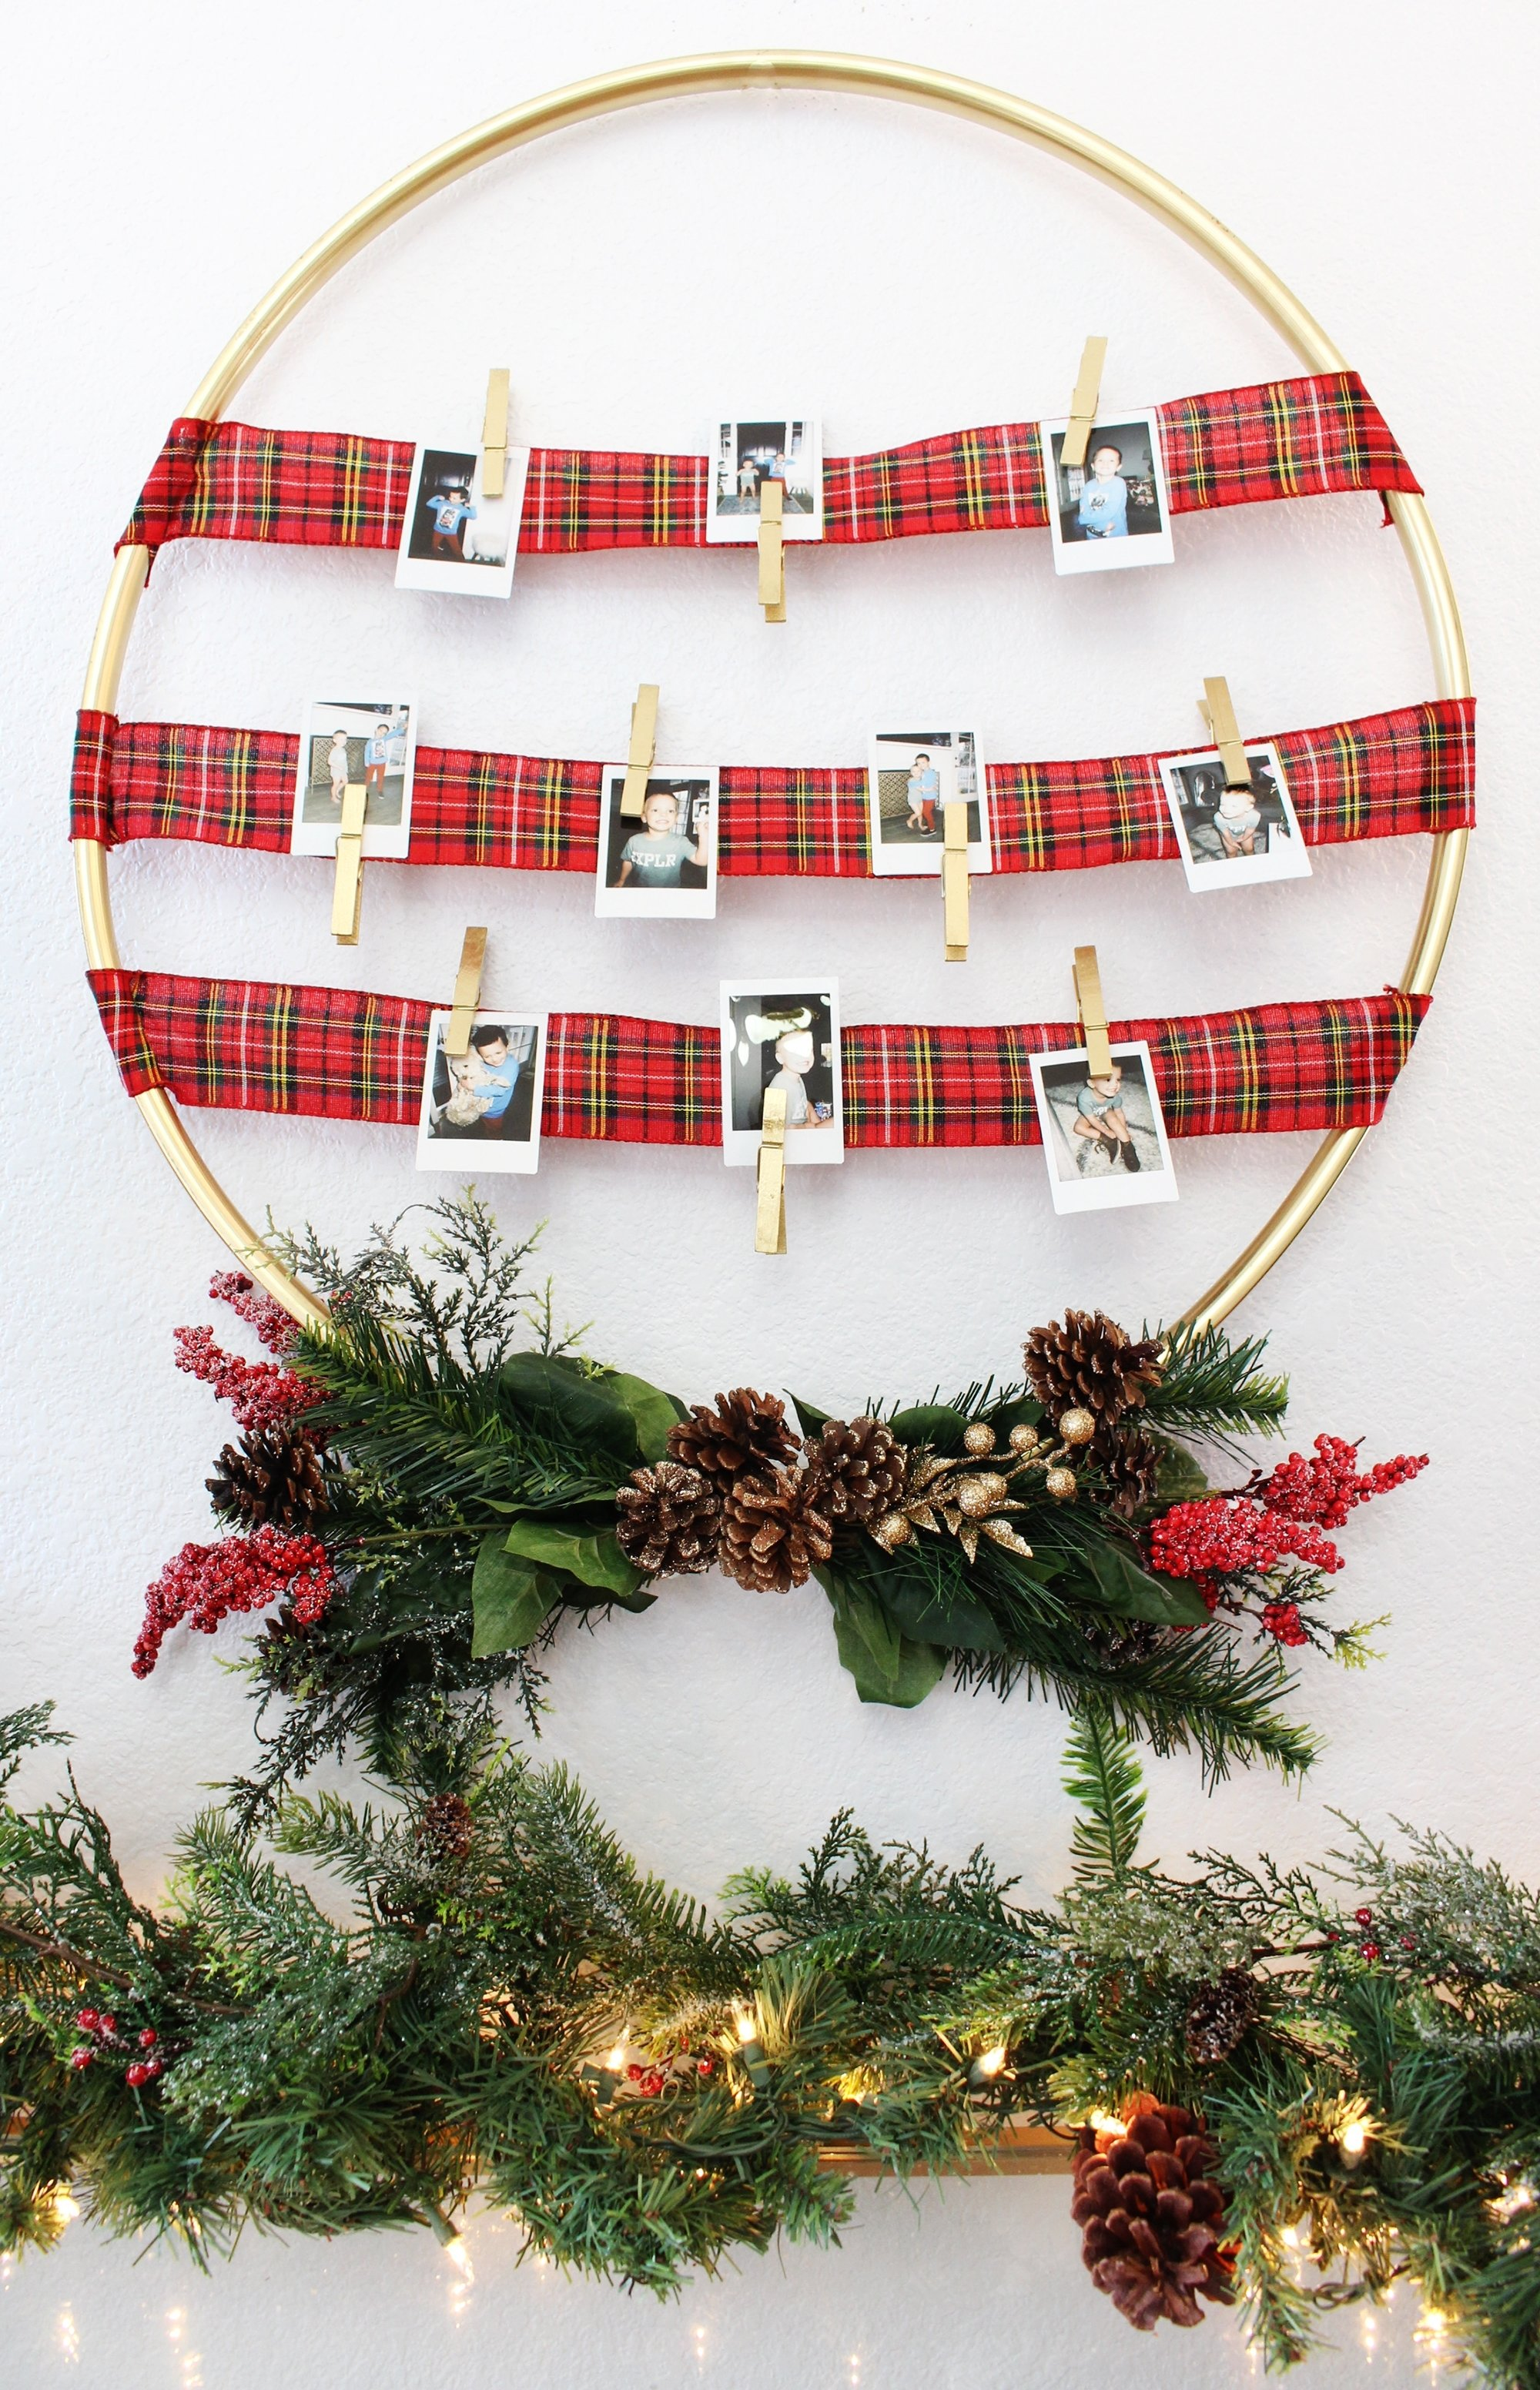 10 Ideal Christmas Gift Ideas For Inlaws gift idea diy photo display hoop classy clutter